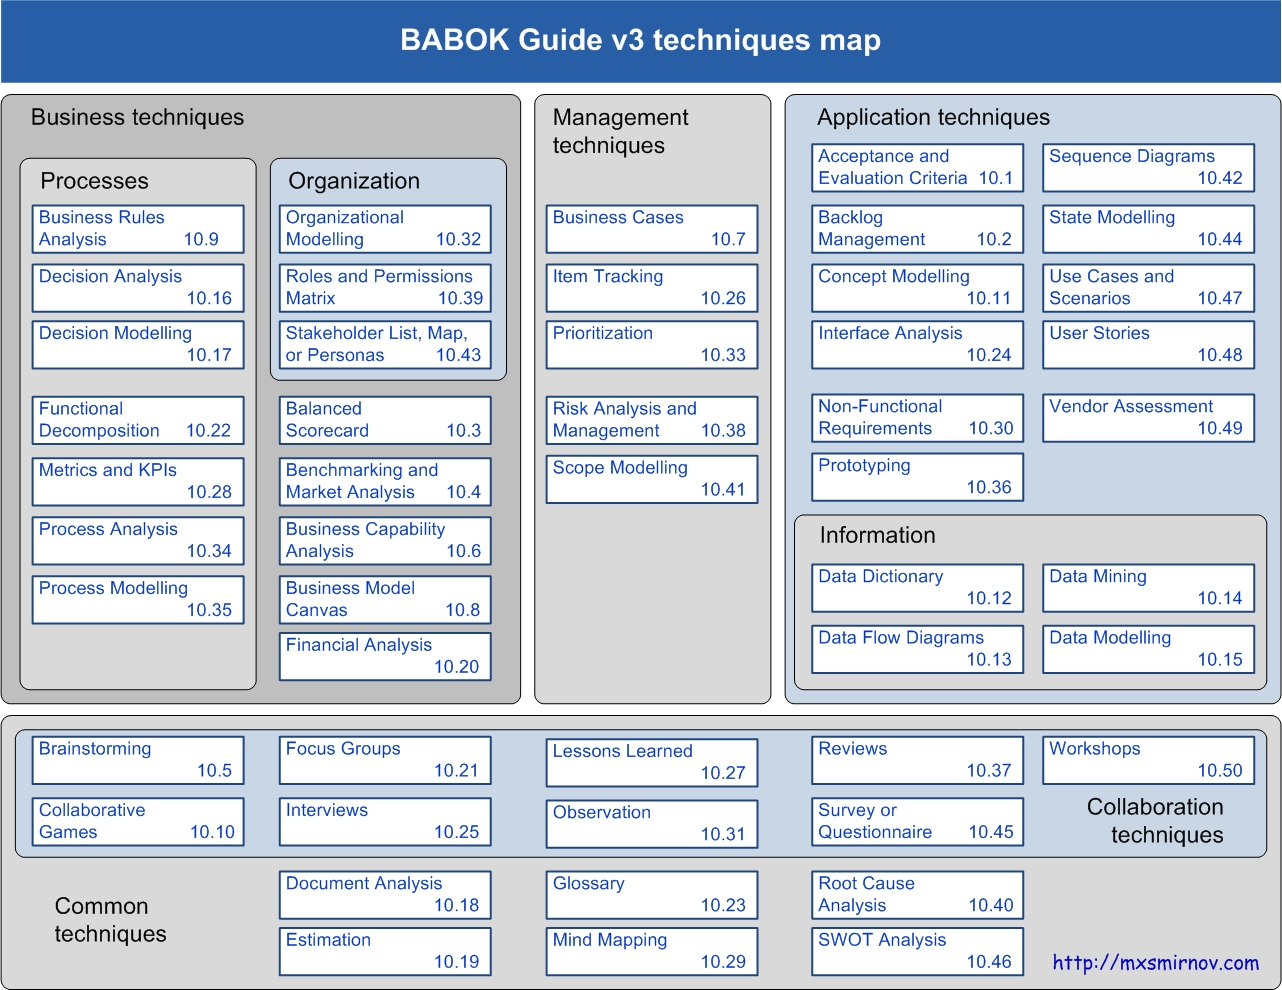 babok3-techniques-map.jpg